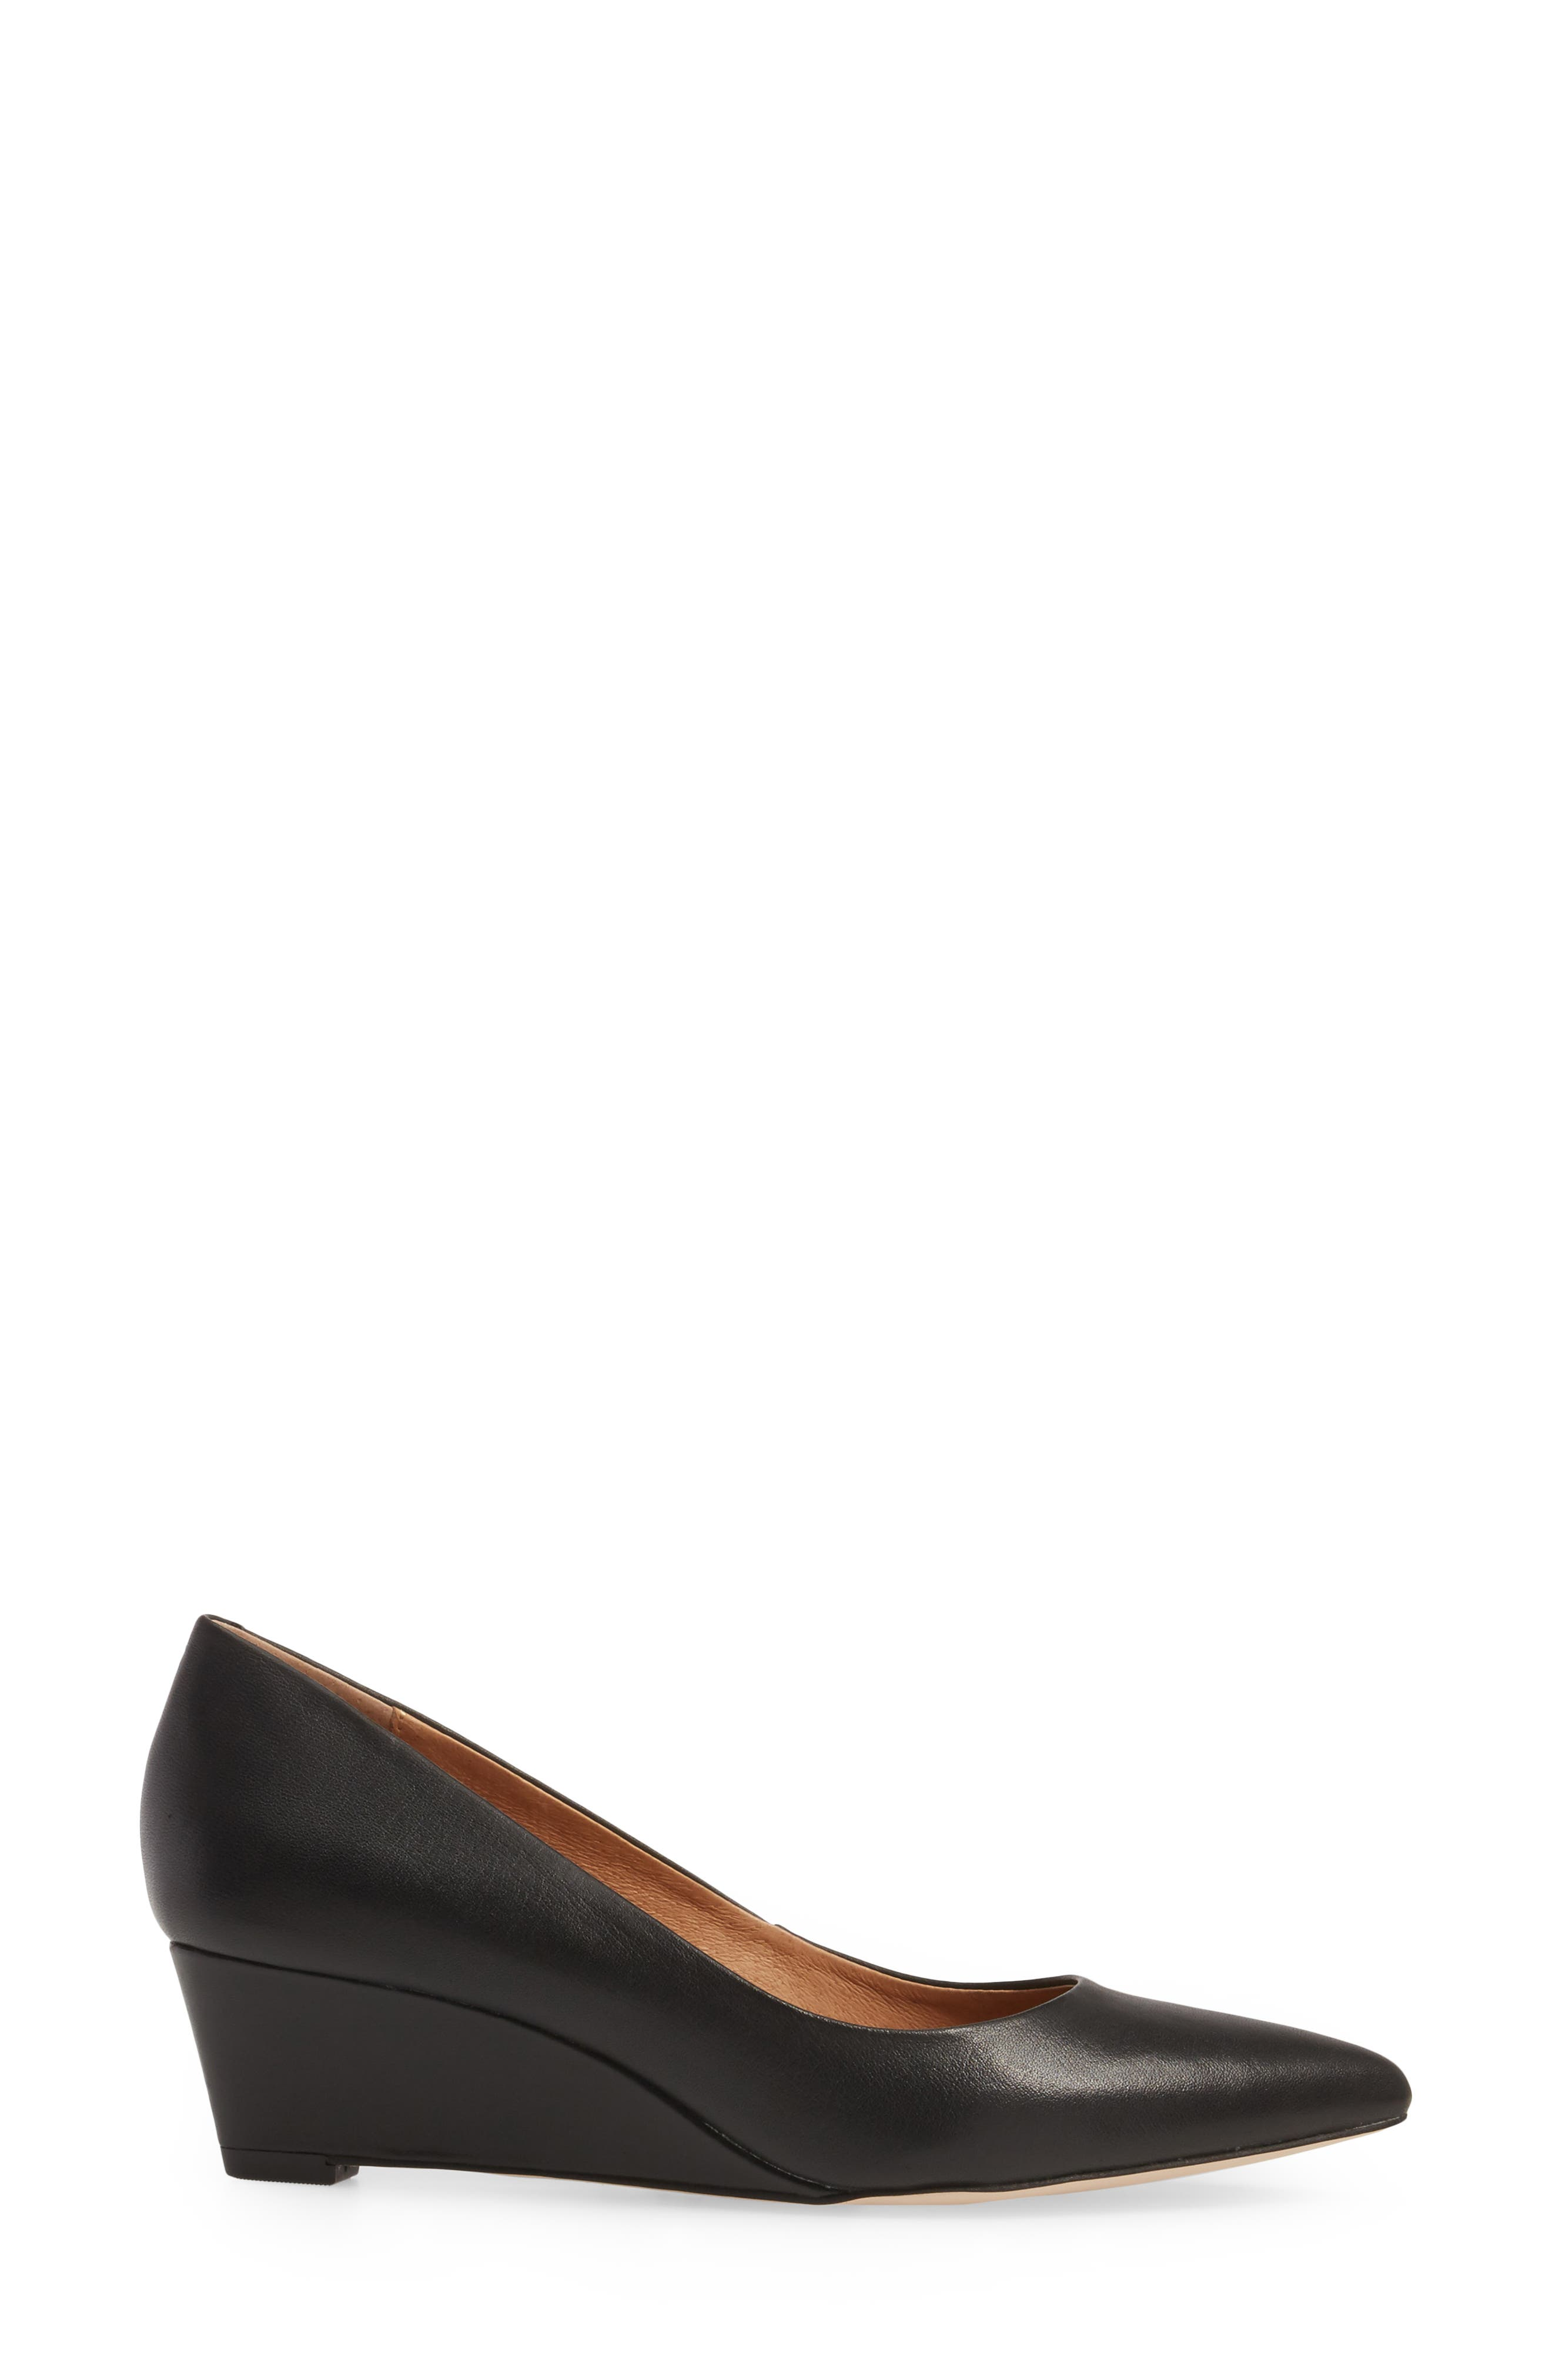 Nelly Pointy Toe Wedge Pump,                             Alternate thumbnail 3, color,                             Black Leather